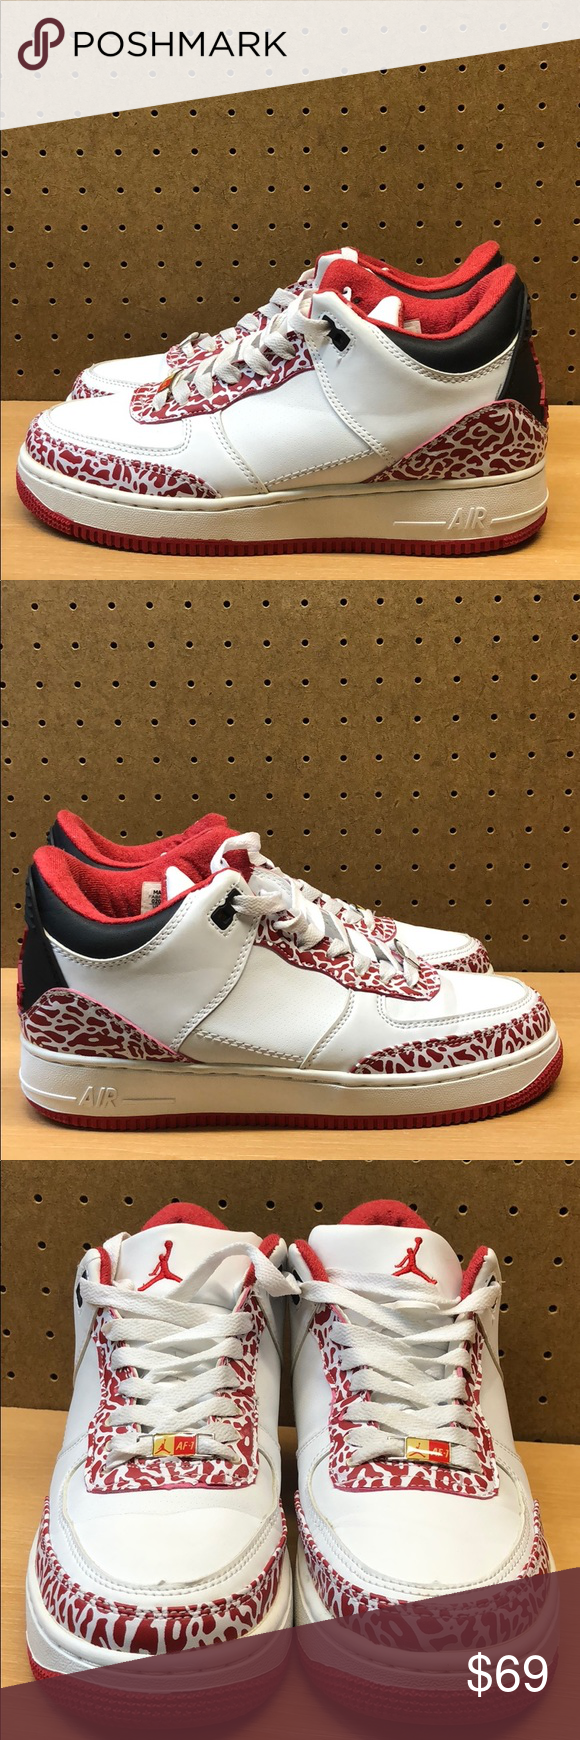 1aa314ffa7cc02 Nike Air Jordan Fusion 3   Air Force 1 Men s sz 7 These are rare. They look  great with a few minor blemishes (see detailed pics) Men s size 7   Women s  size ...